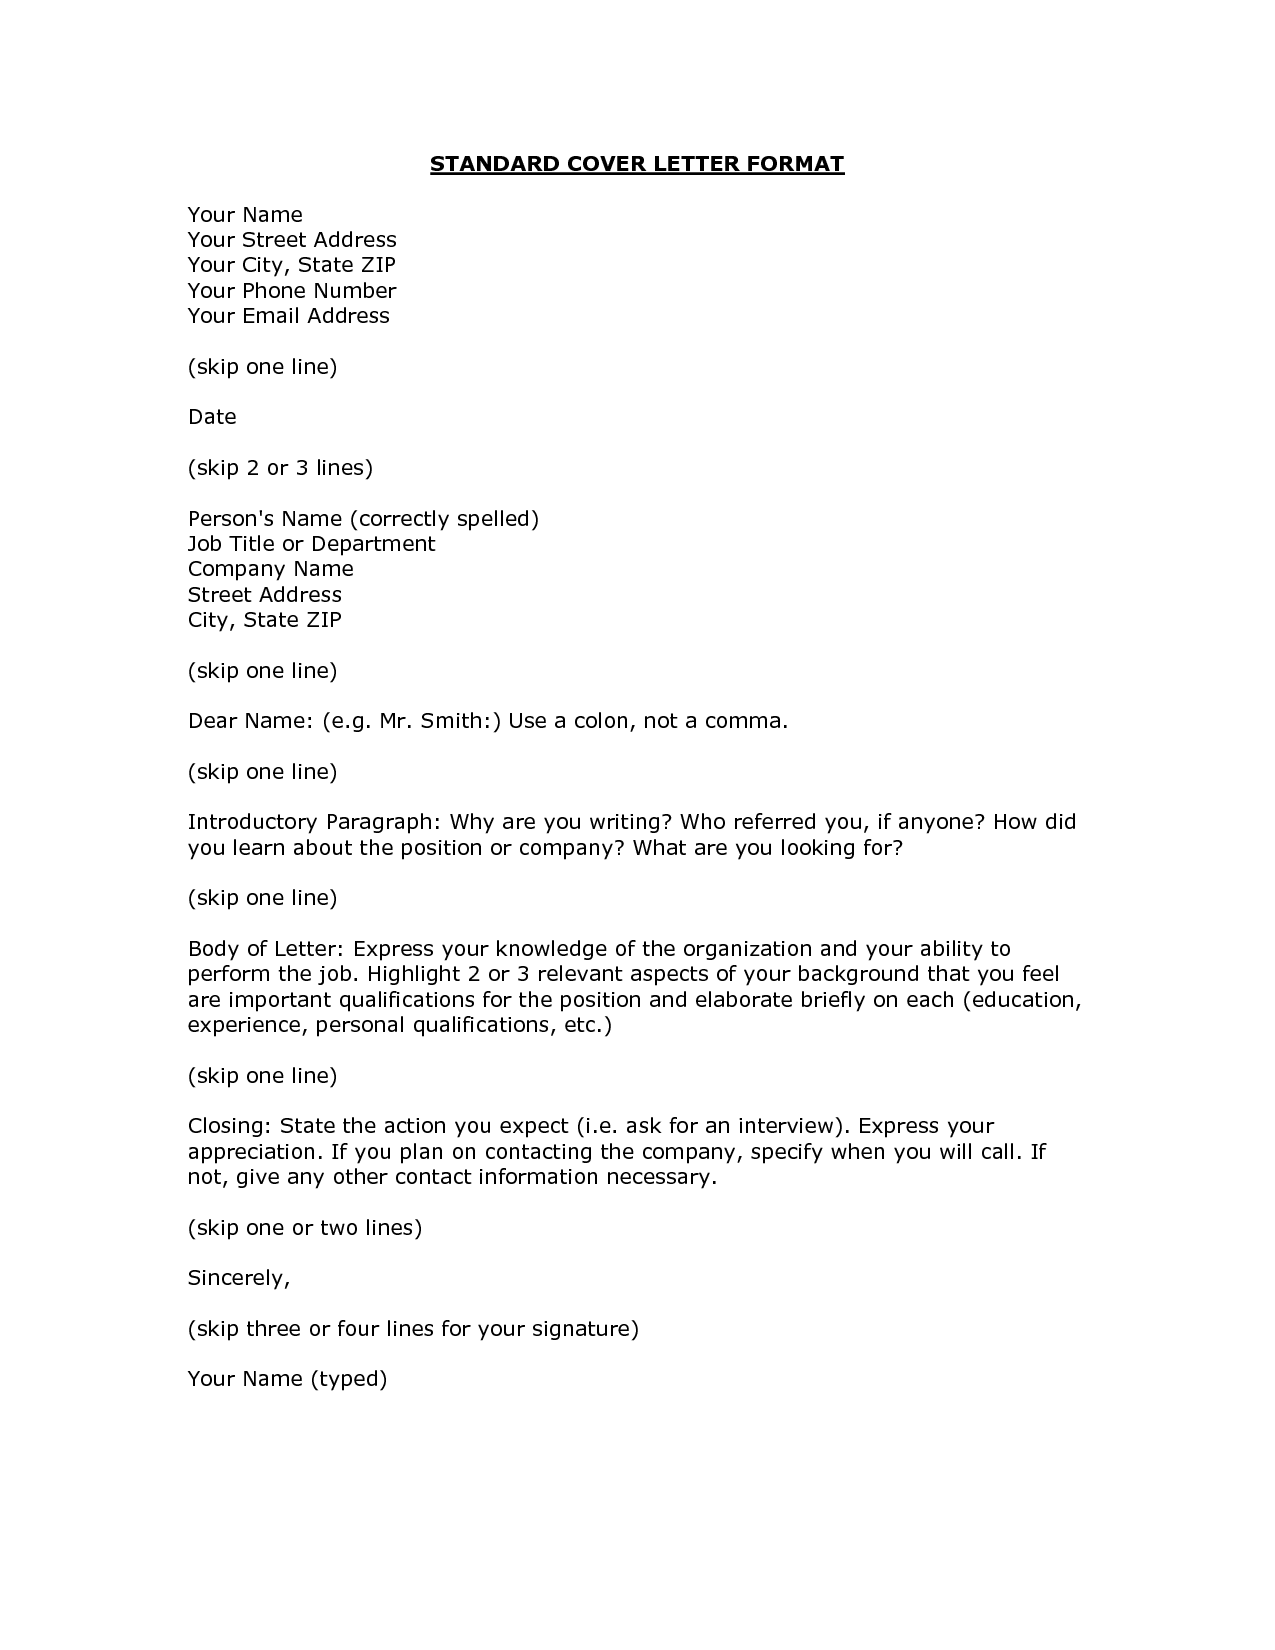 proper format for a cover letter  Google Search  Job Search  Pinterest  Decoration and Interiors